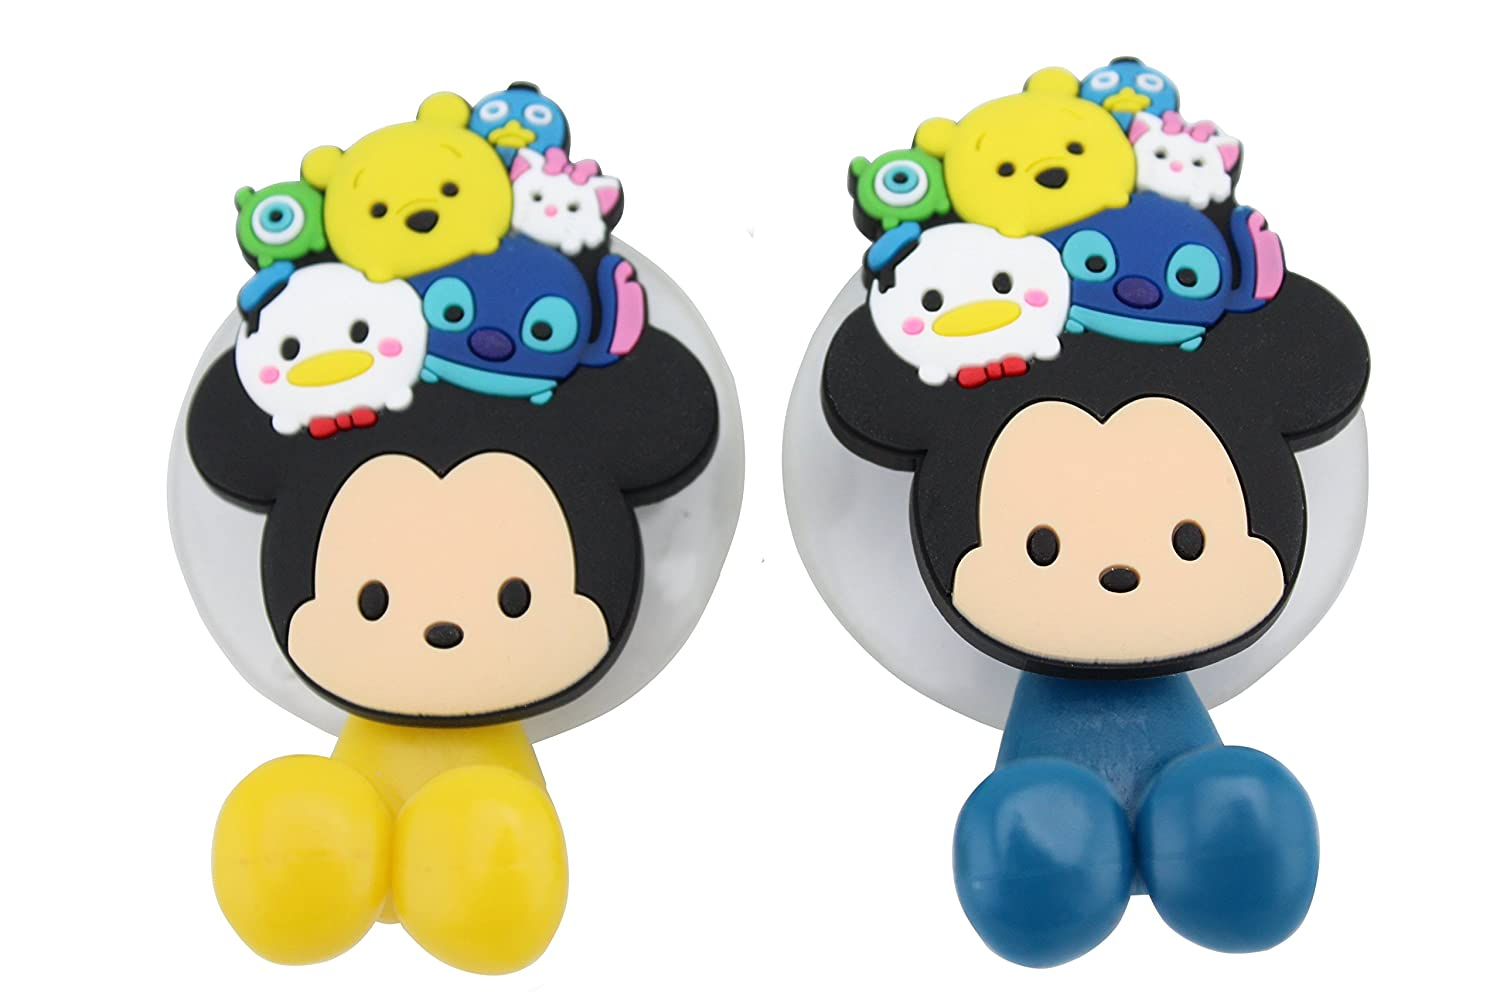 Winnie the pooh bathroom sets - Amazon Com Finex Set Of 2 Disney Tsum Tsum Mickey Mouse And Friends Toothbrush Holders With Suction Cup For Wall In Bathroom At Home With Winnie The